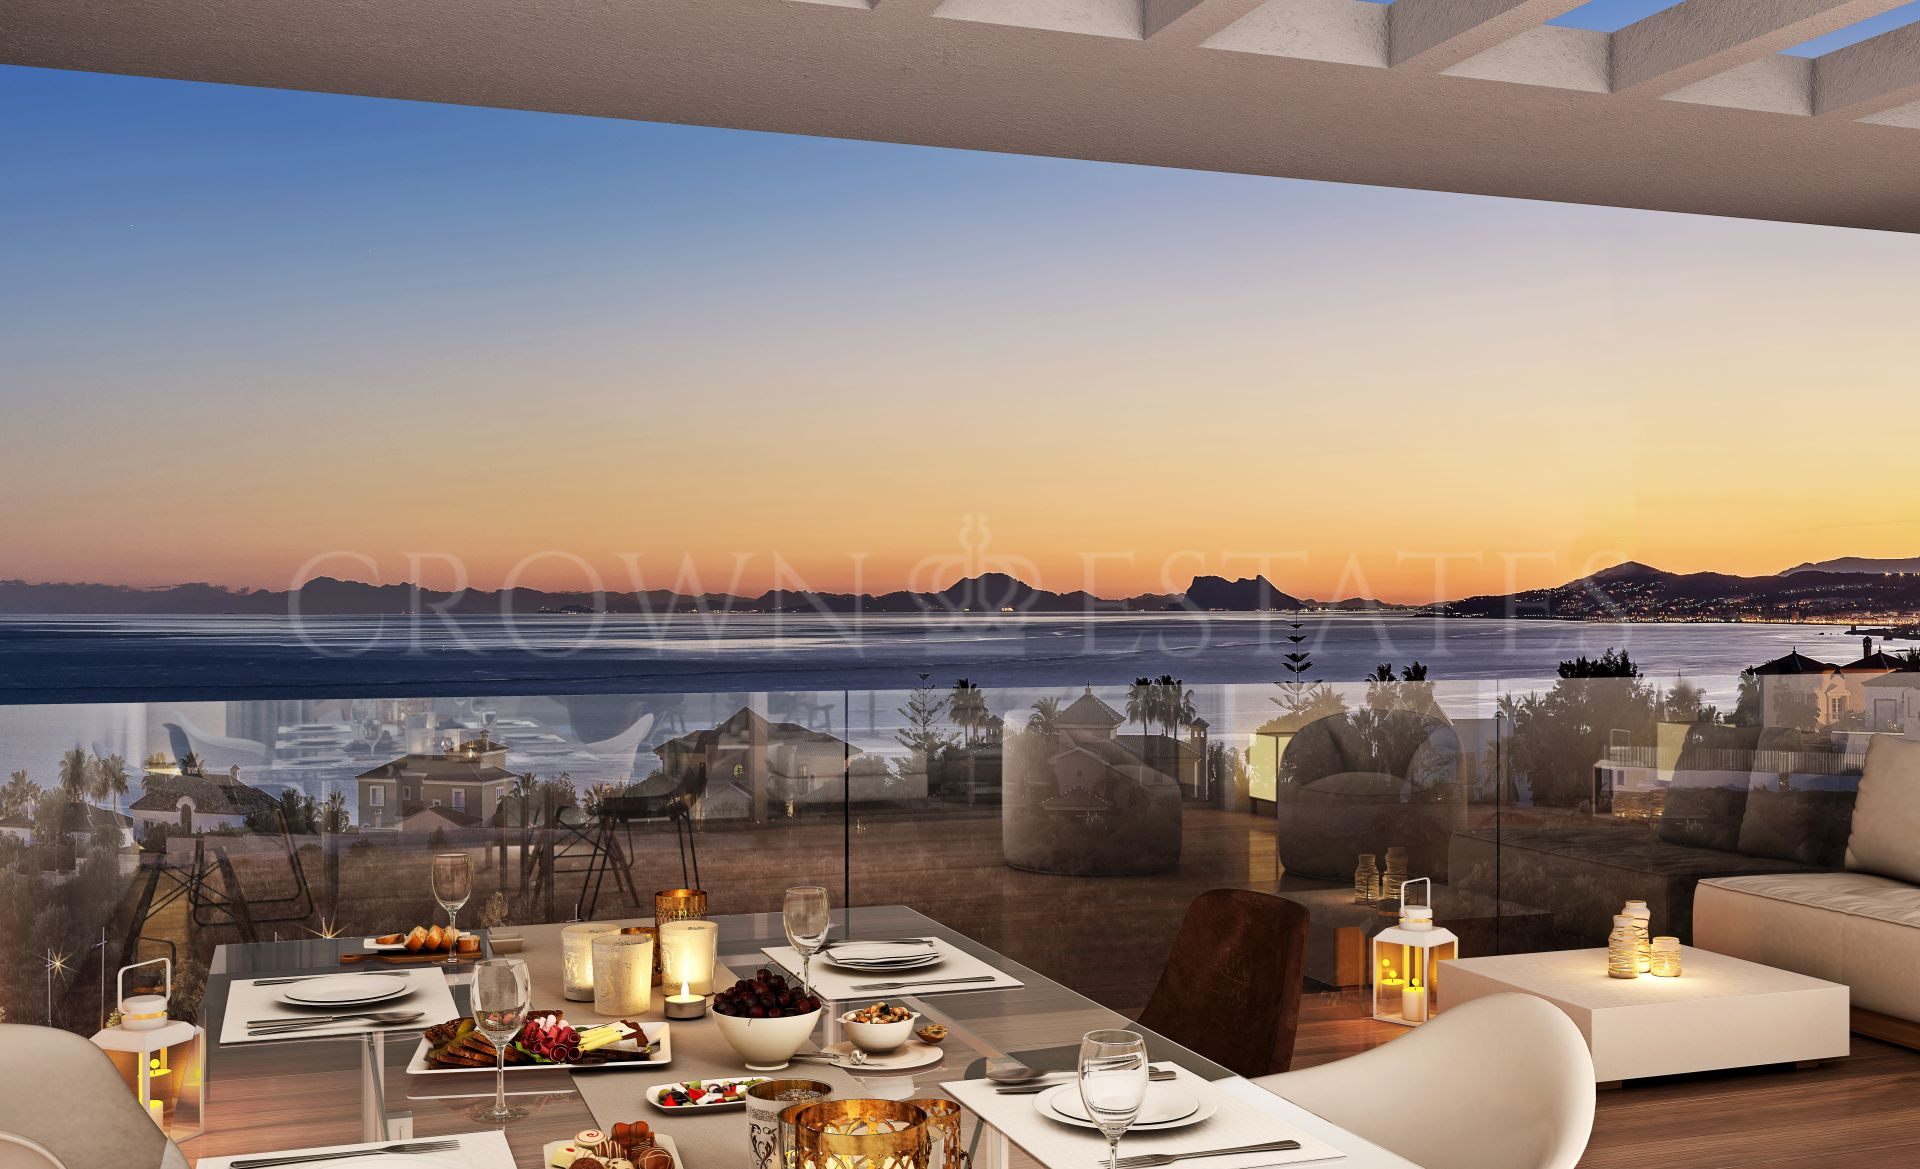 Scenic, modern apartments with amazing seaviews in Estepona town